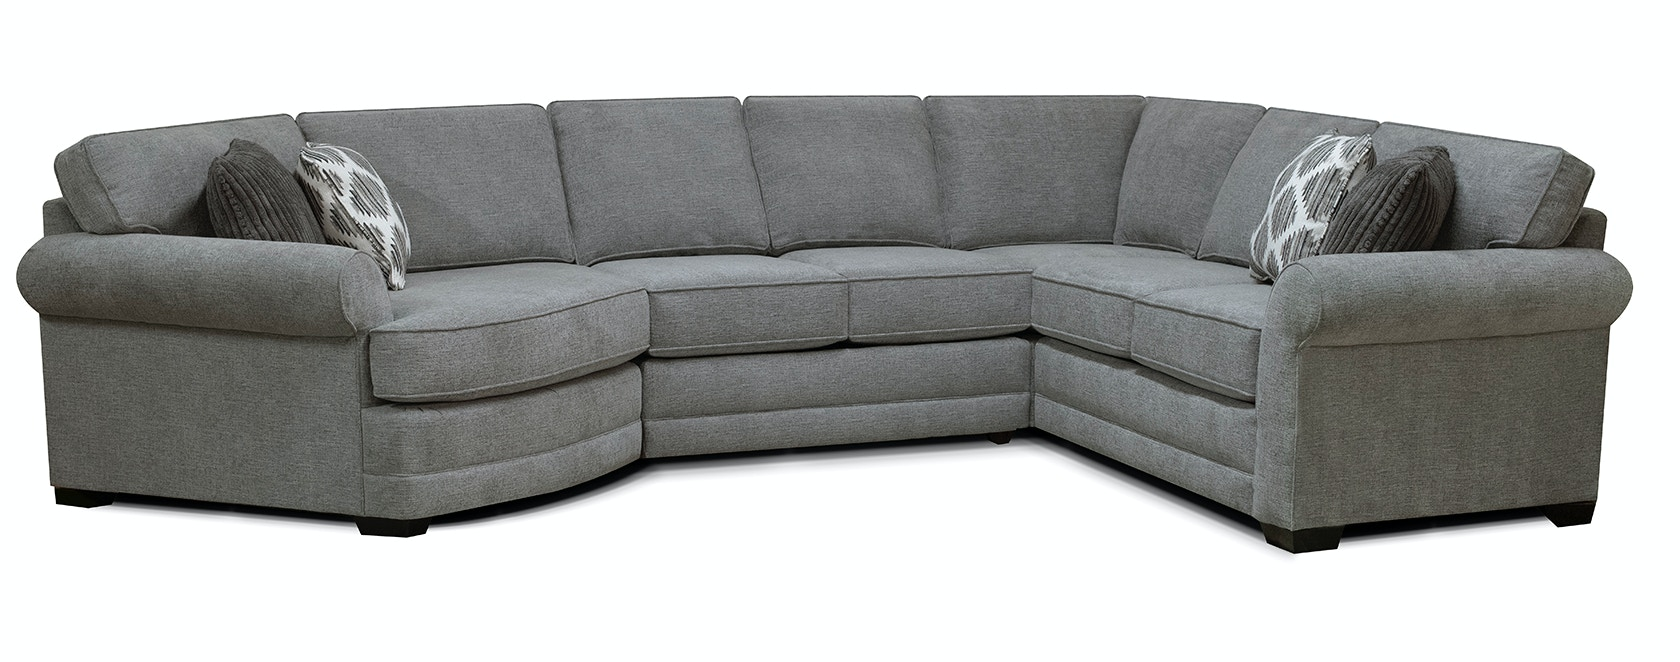 England Brantley Sectional 5630 Sect